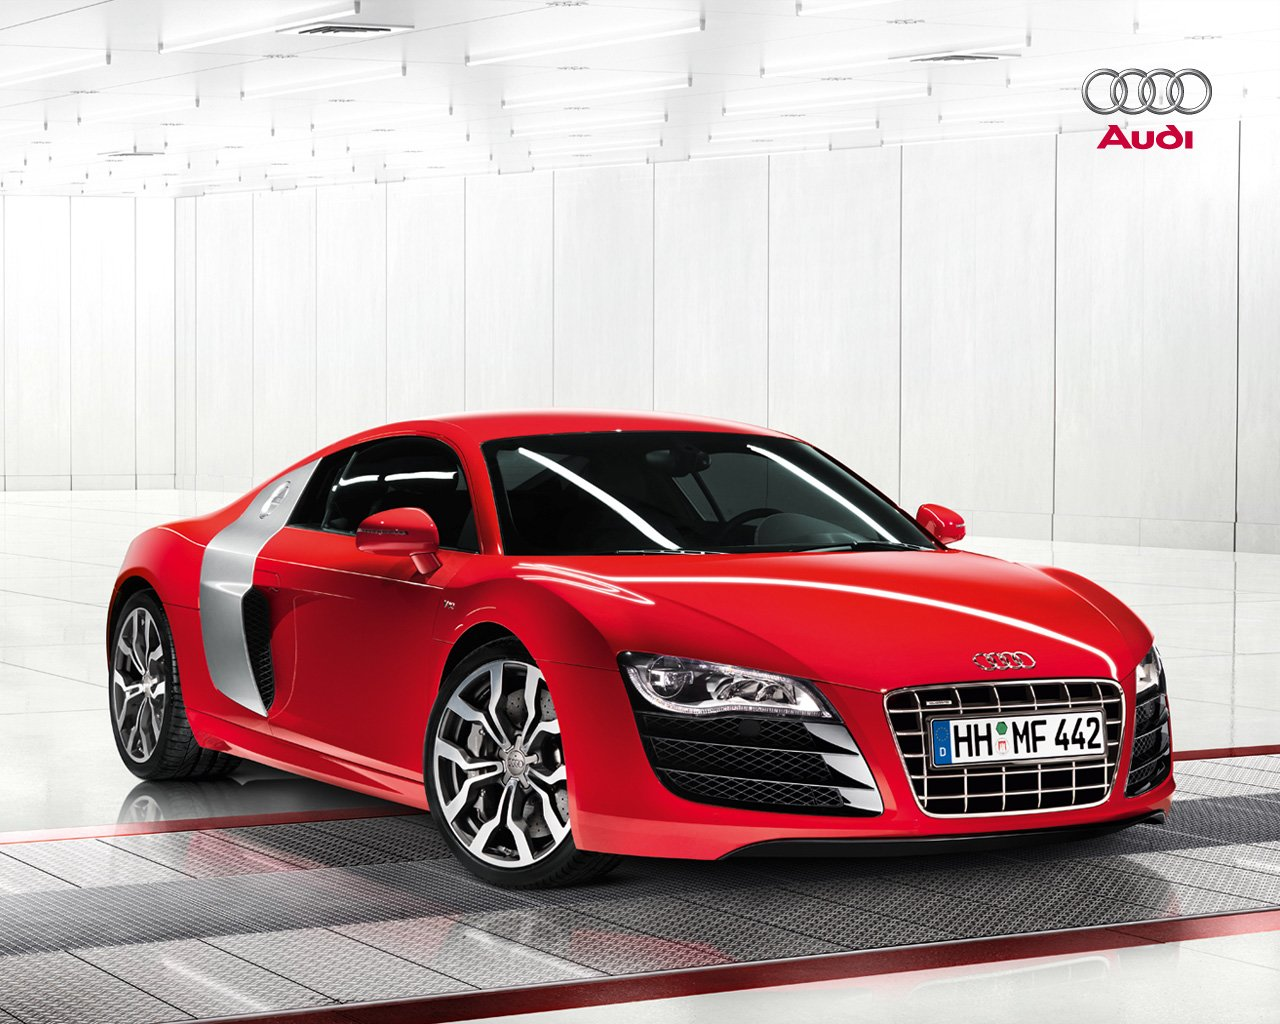 Latest Red Audi R8 Wallpaper Automotive Car Center Free Download